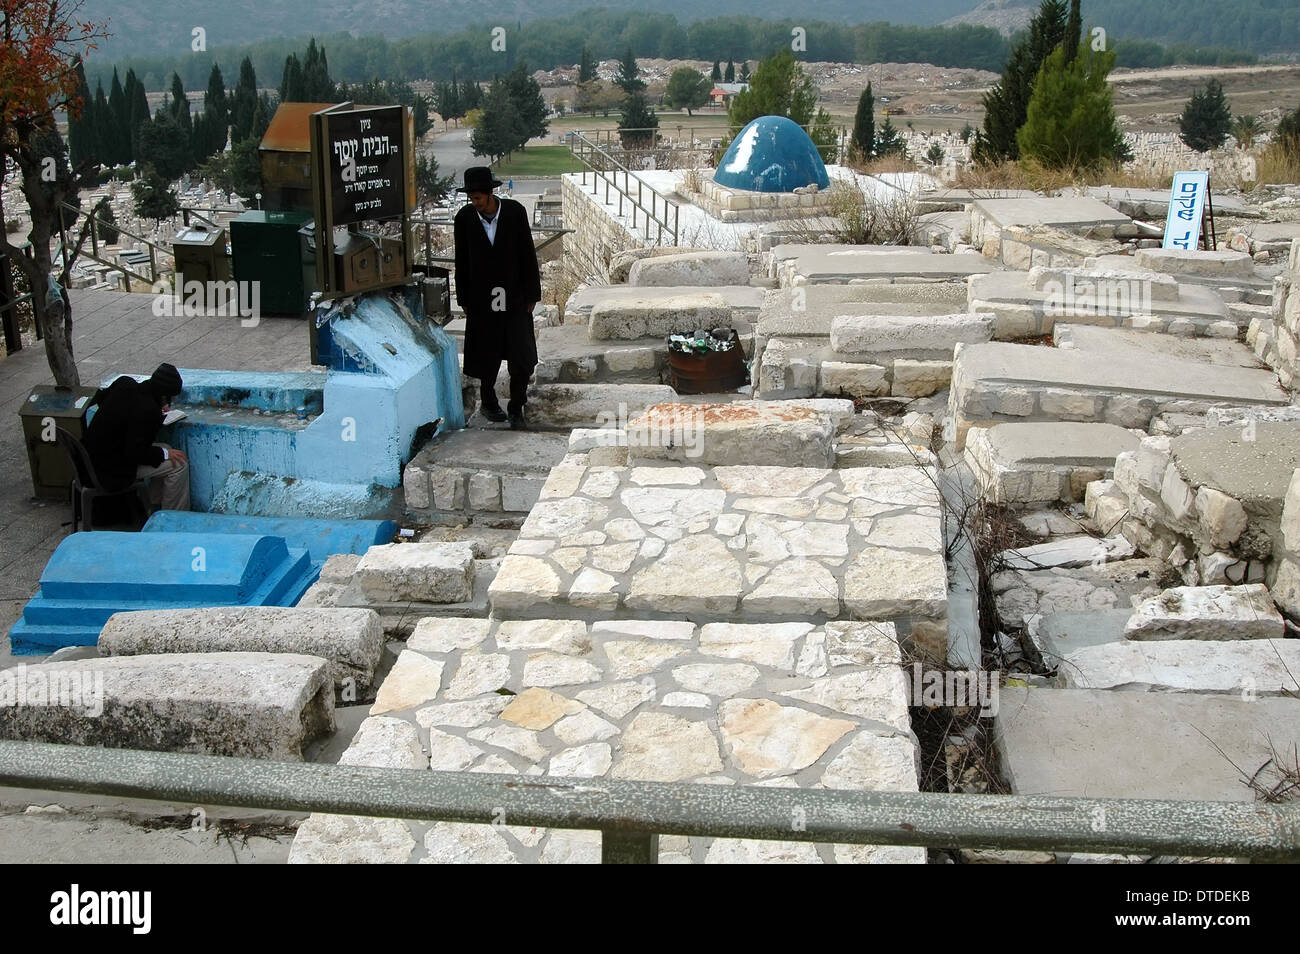 Righteous Tombs in Sefad, Israel - Stock Image